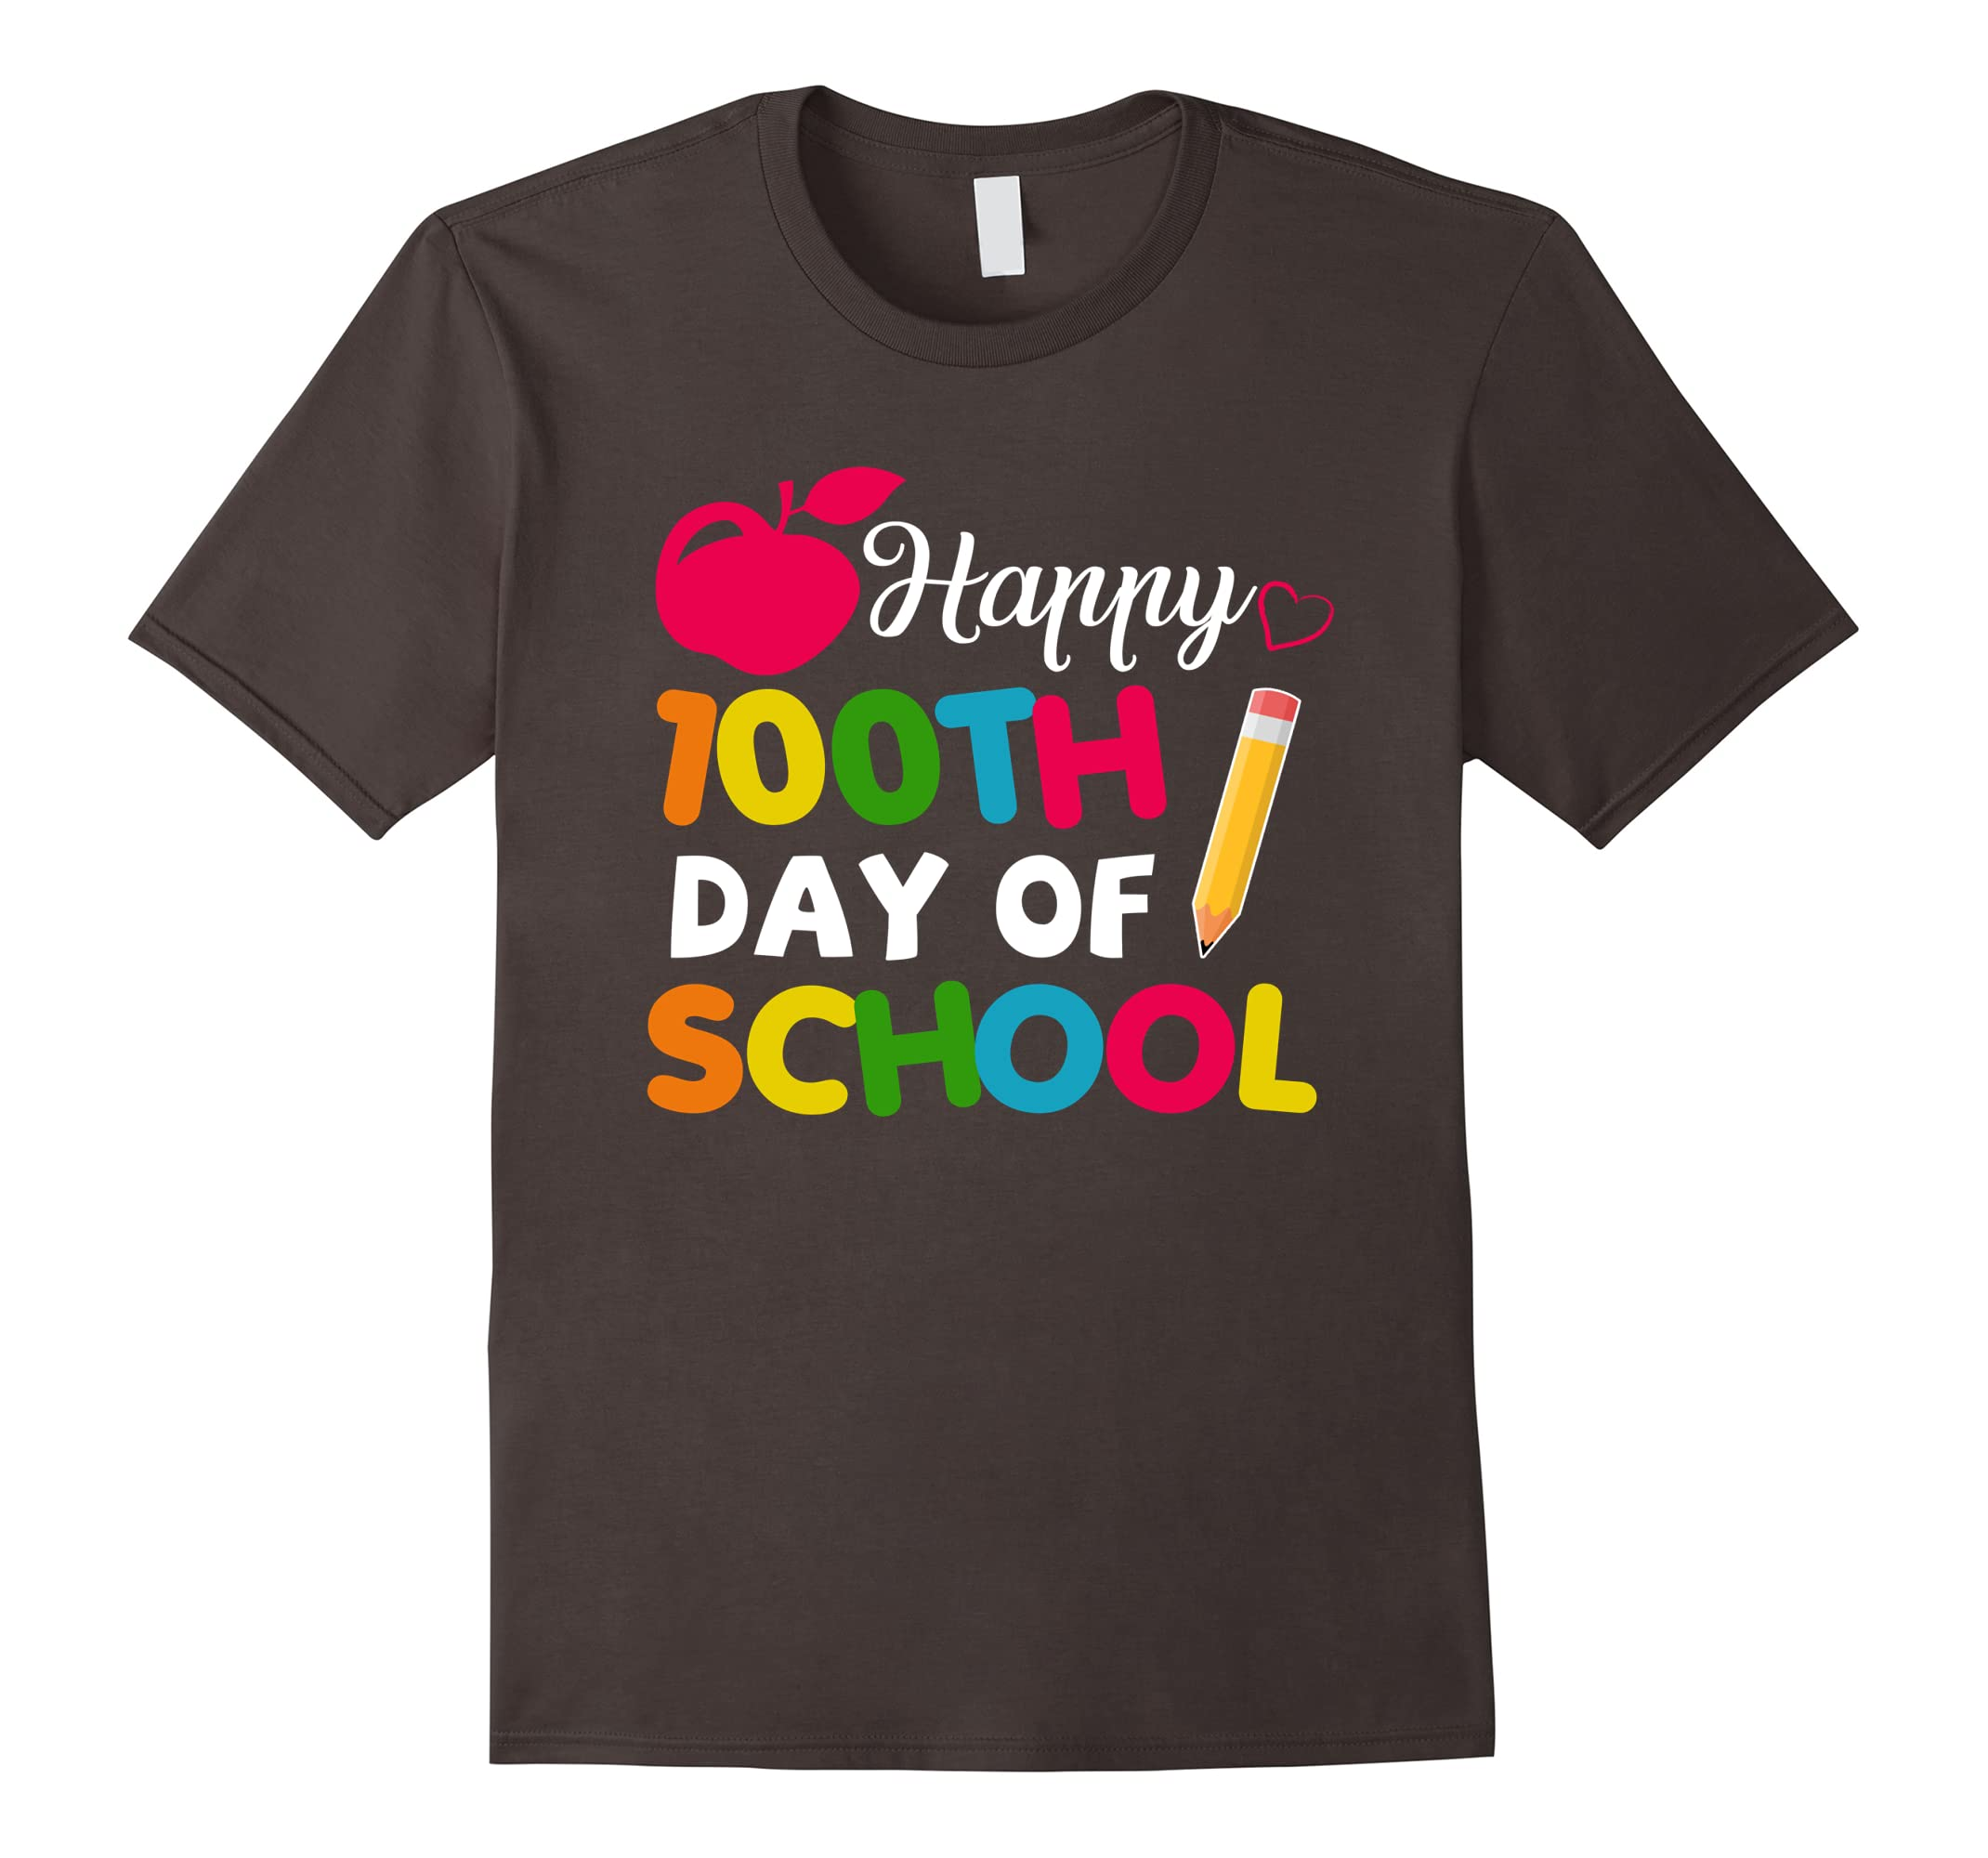 Happy 100th Day of School Shirt for Teacher or Child-ah my shirt one gift